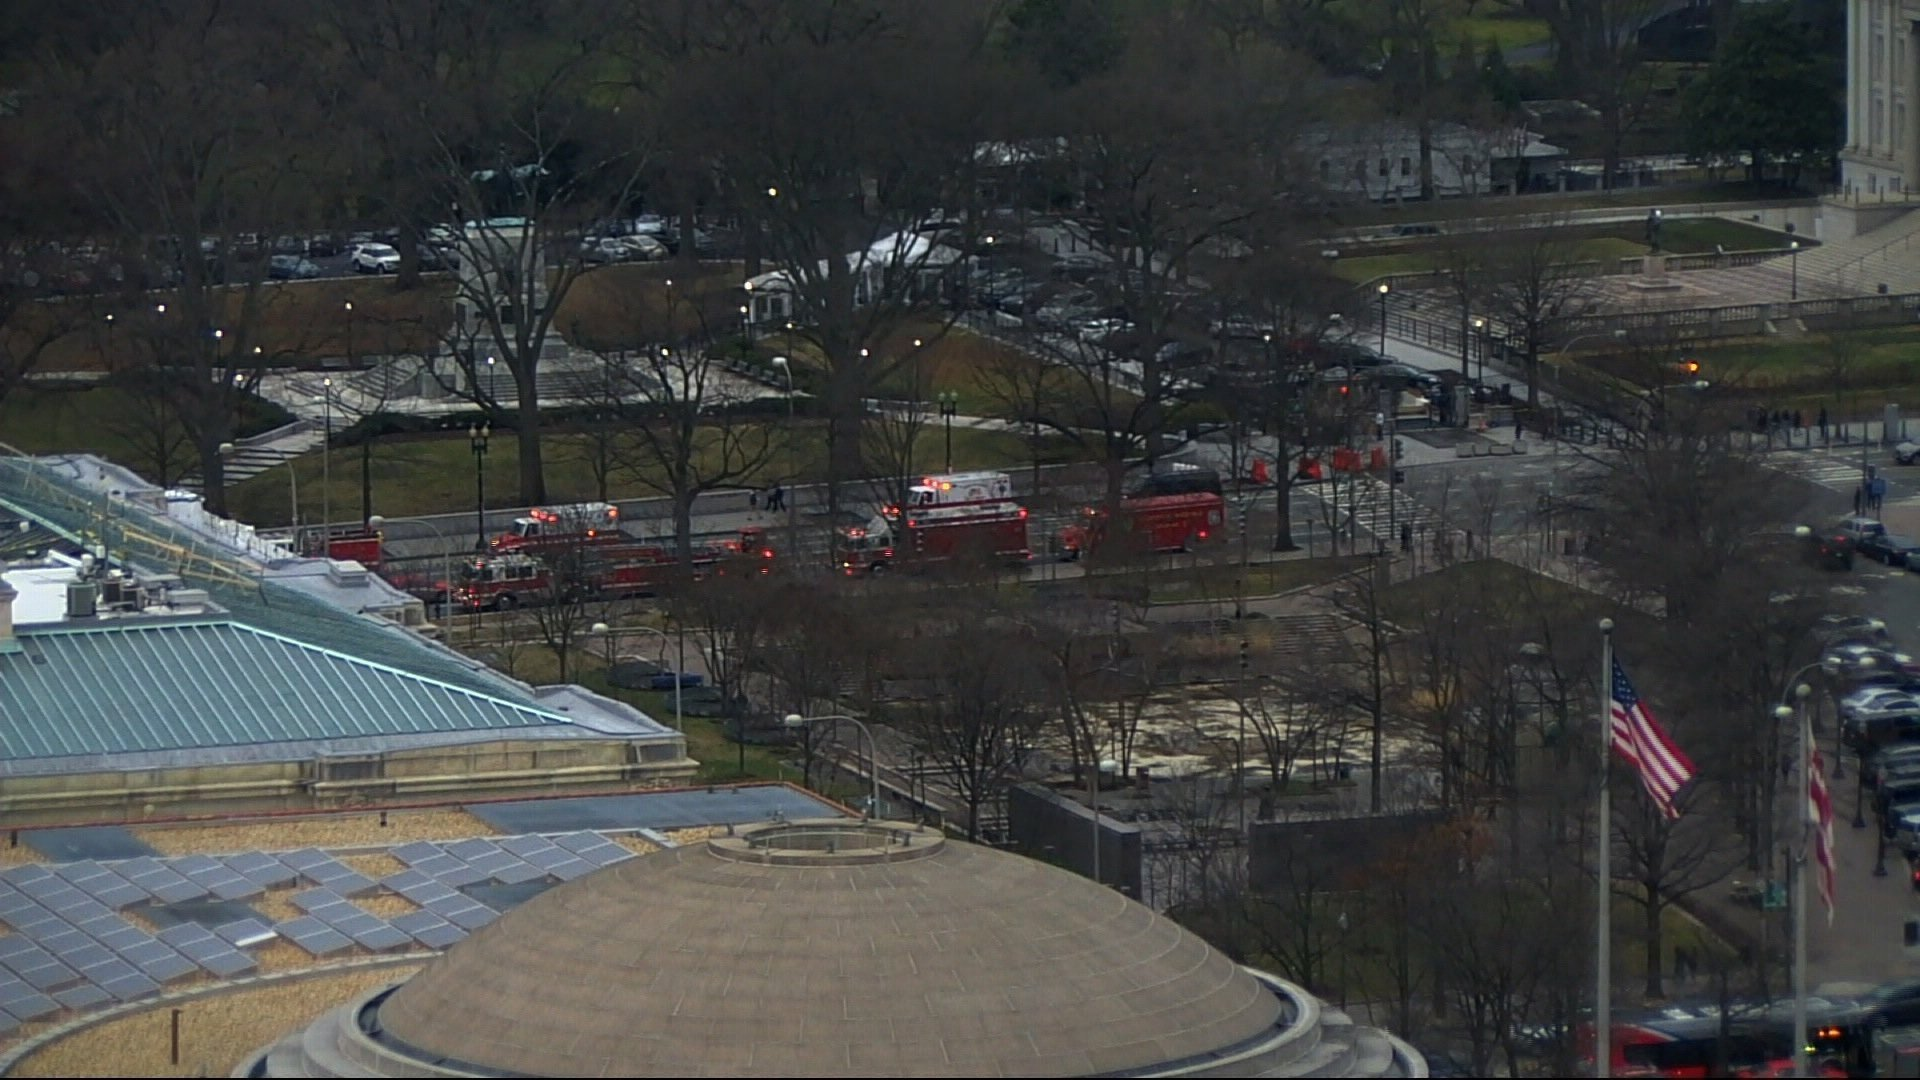 White House in 'lockdown' after female driver 'rams' vehicle into security gate